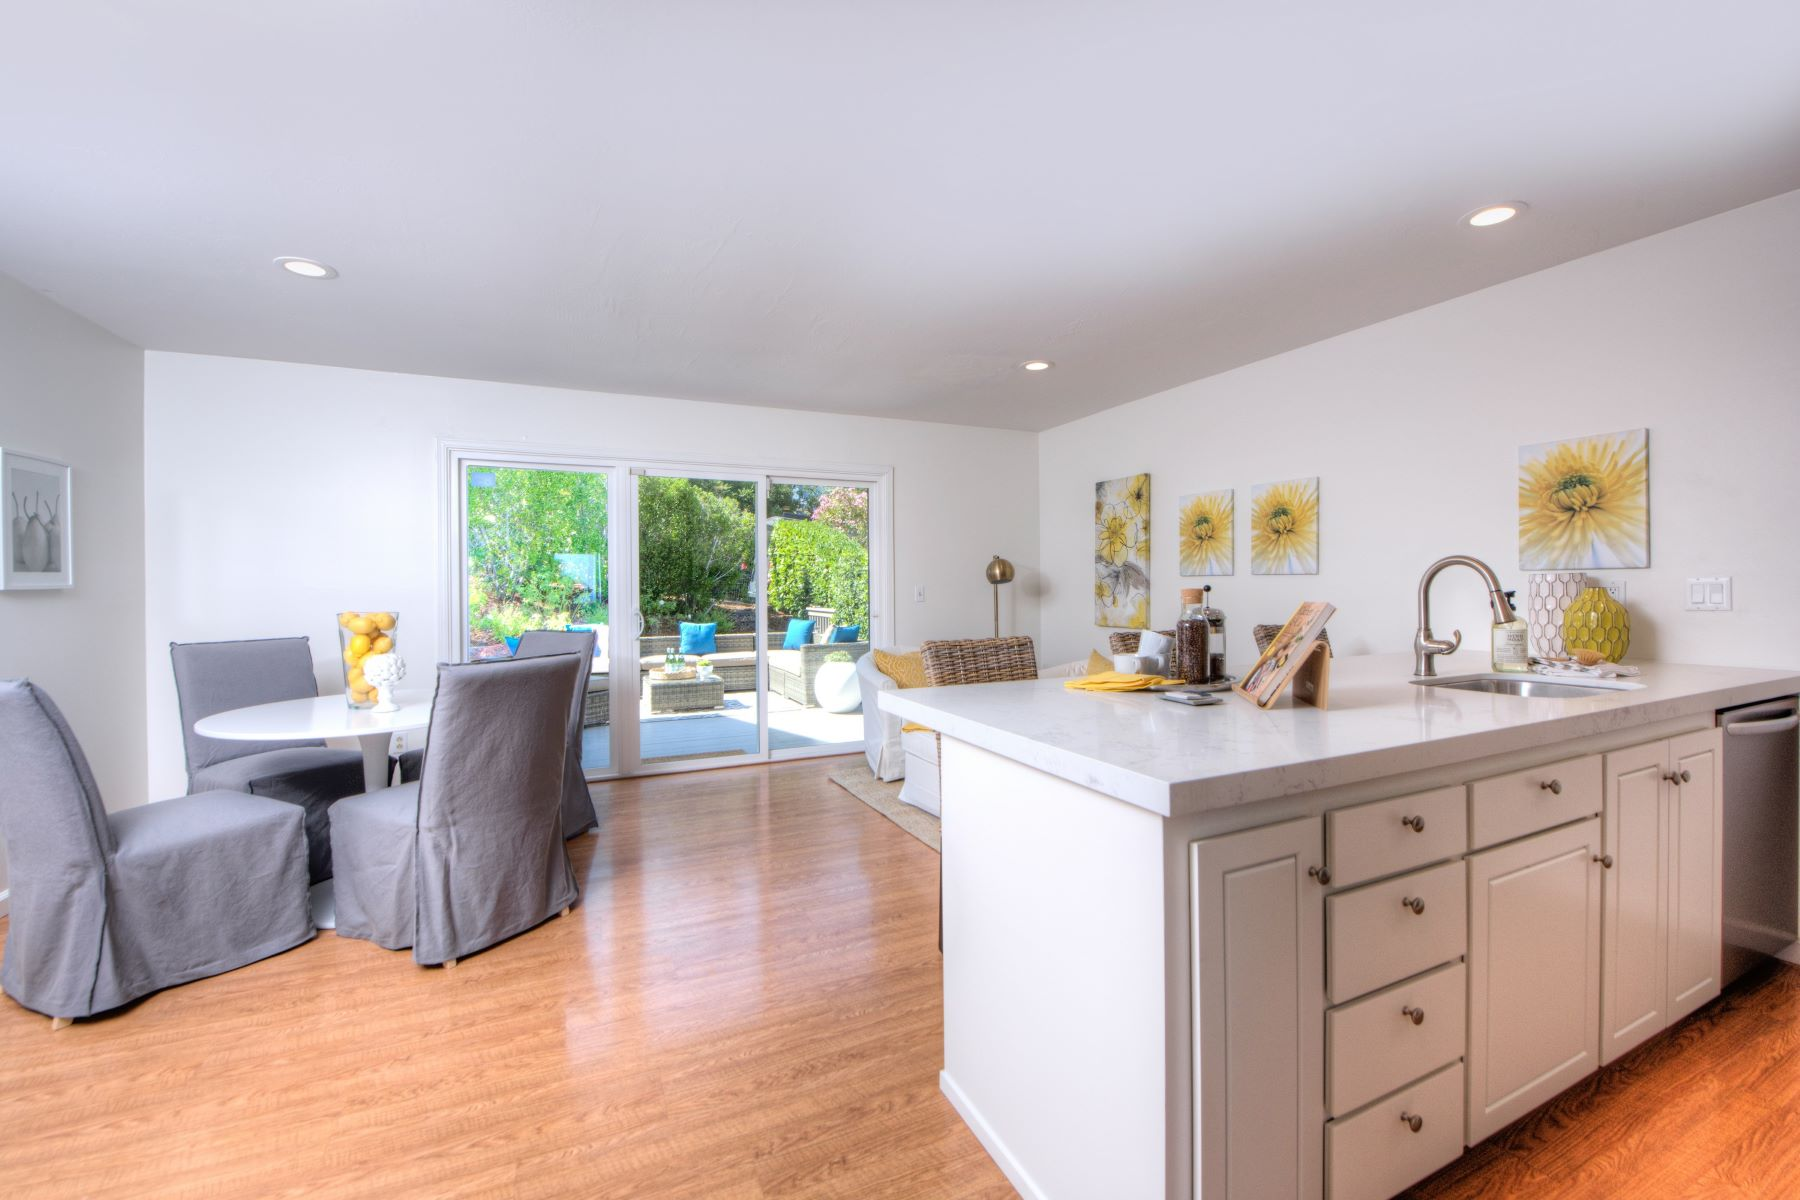 Additional photo for property listing at Remodeled Sun-Filled Contemporary Home with Two-Bridge Bay Views 36 Tampa Drive San Rafael, Калифорния 94901 Соединенные Штаты